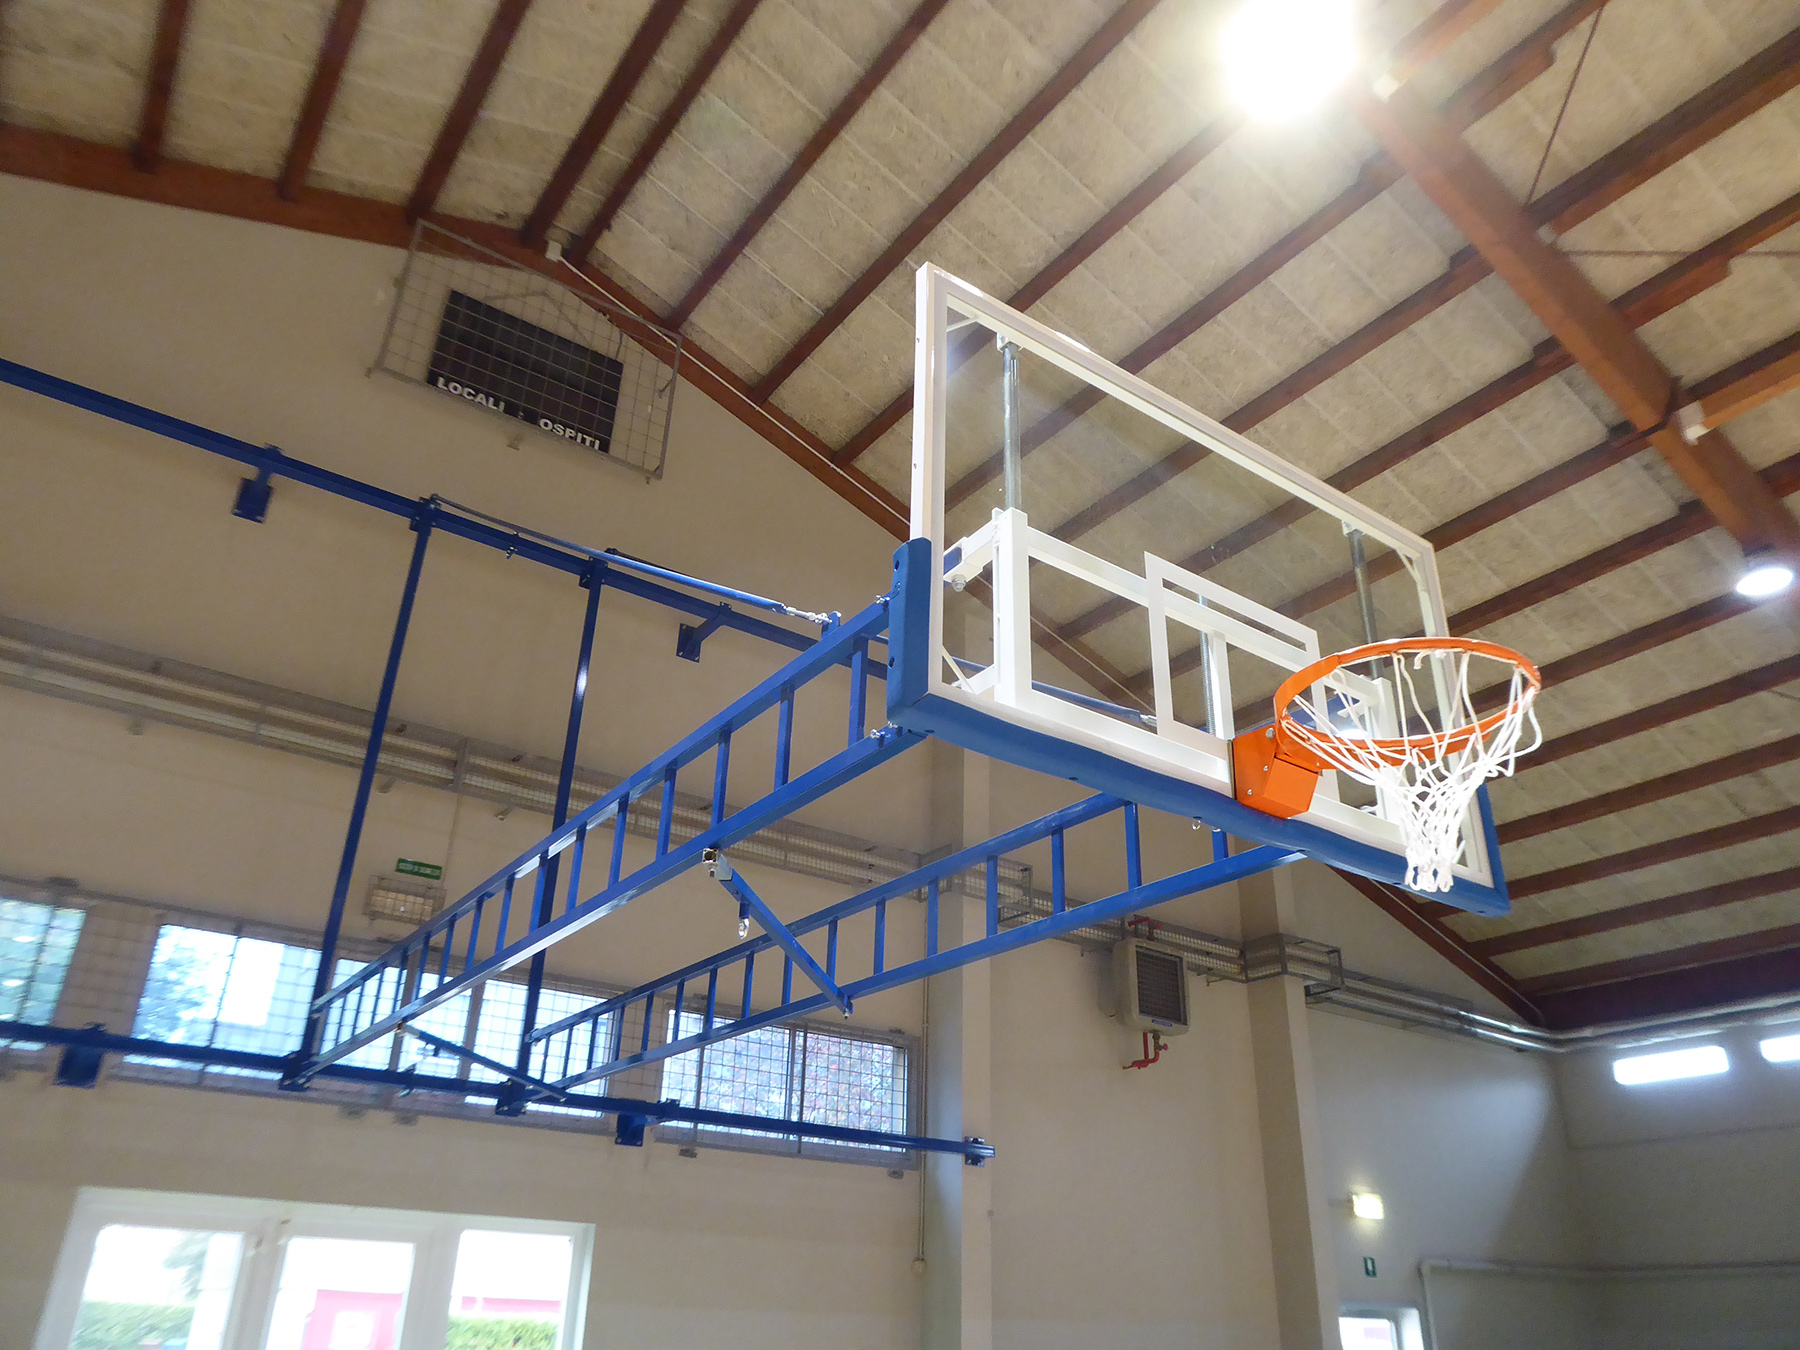 FIBA homologated baskets were supplied in collaboration with the Artisport company http://www.artisport.it/